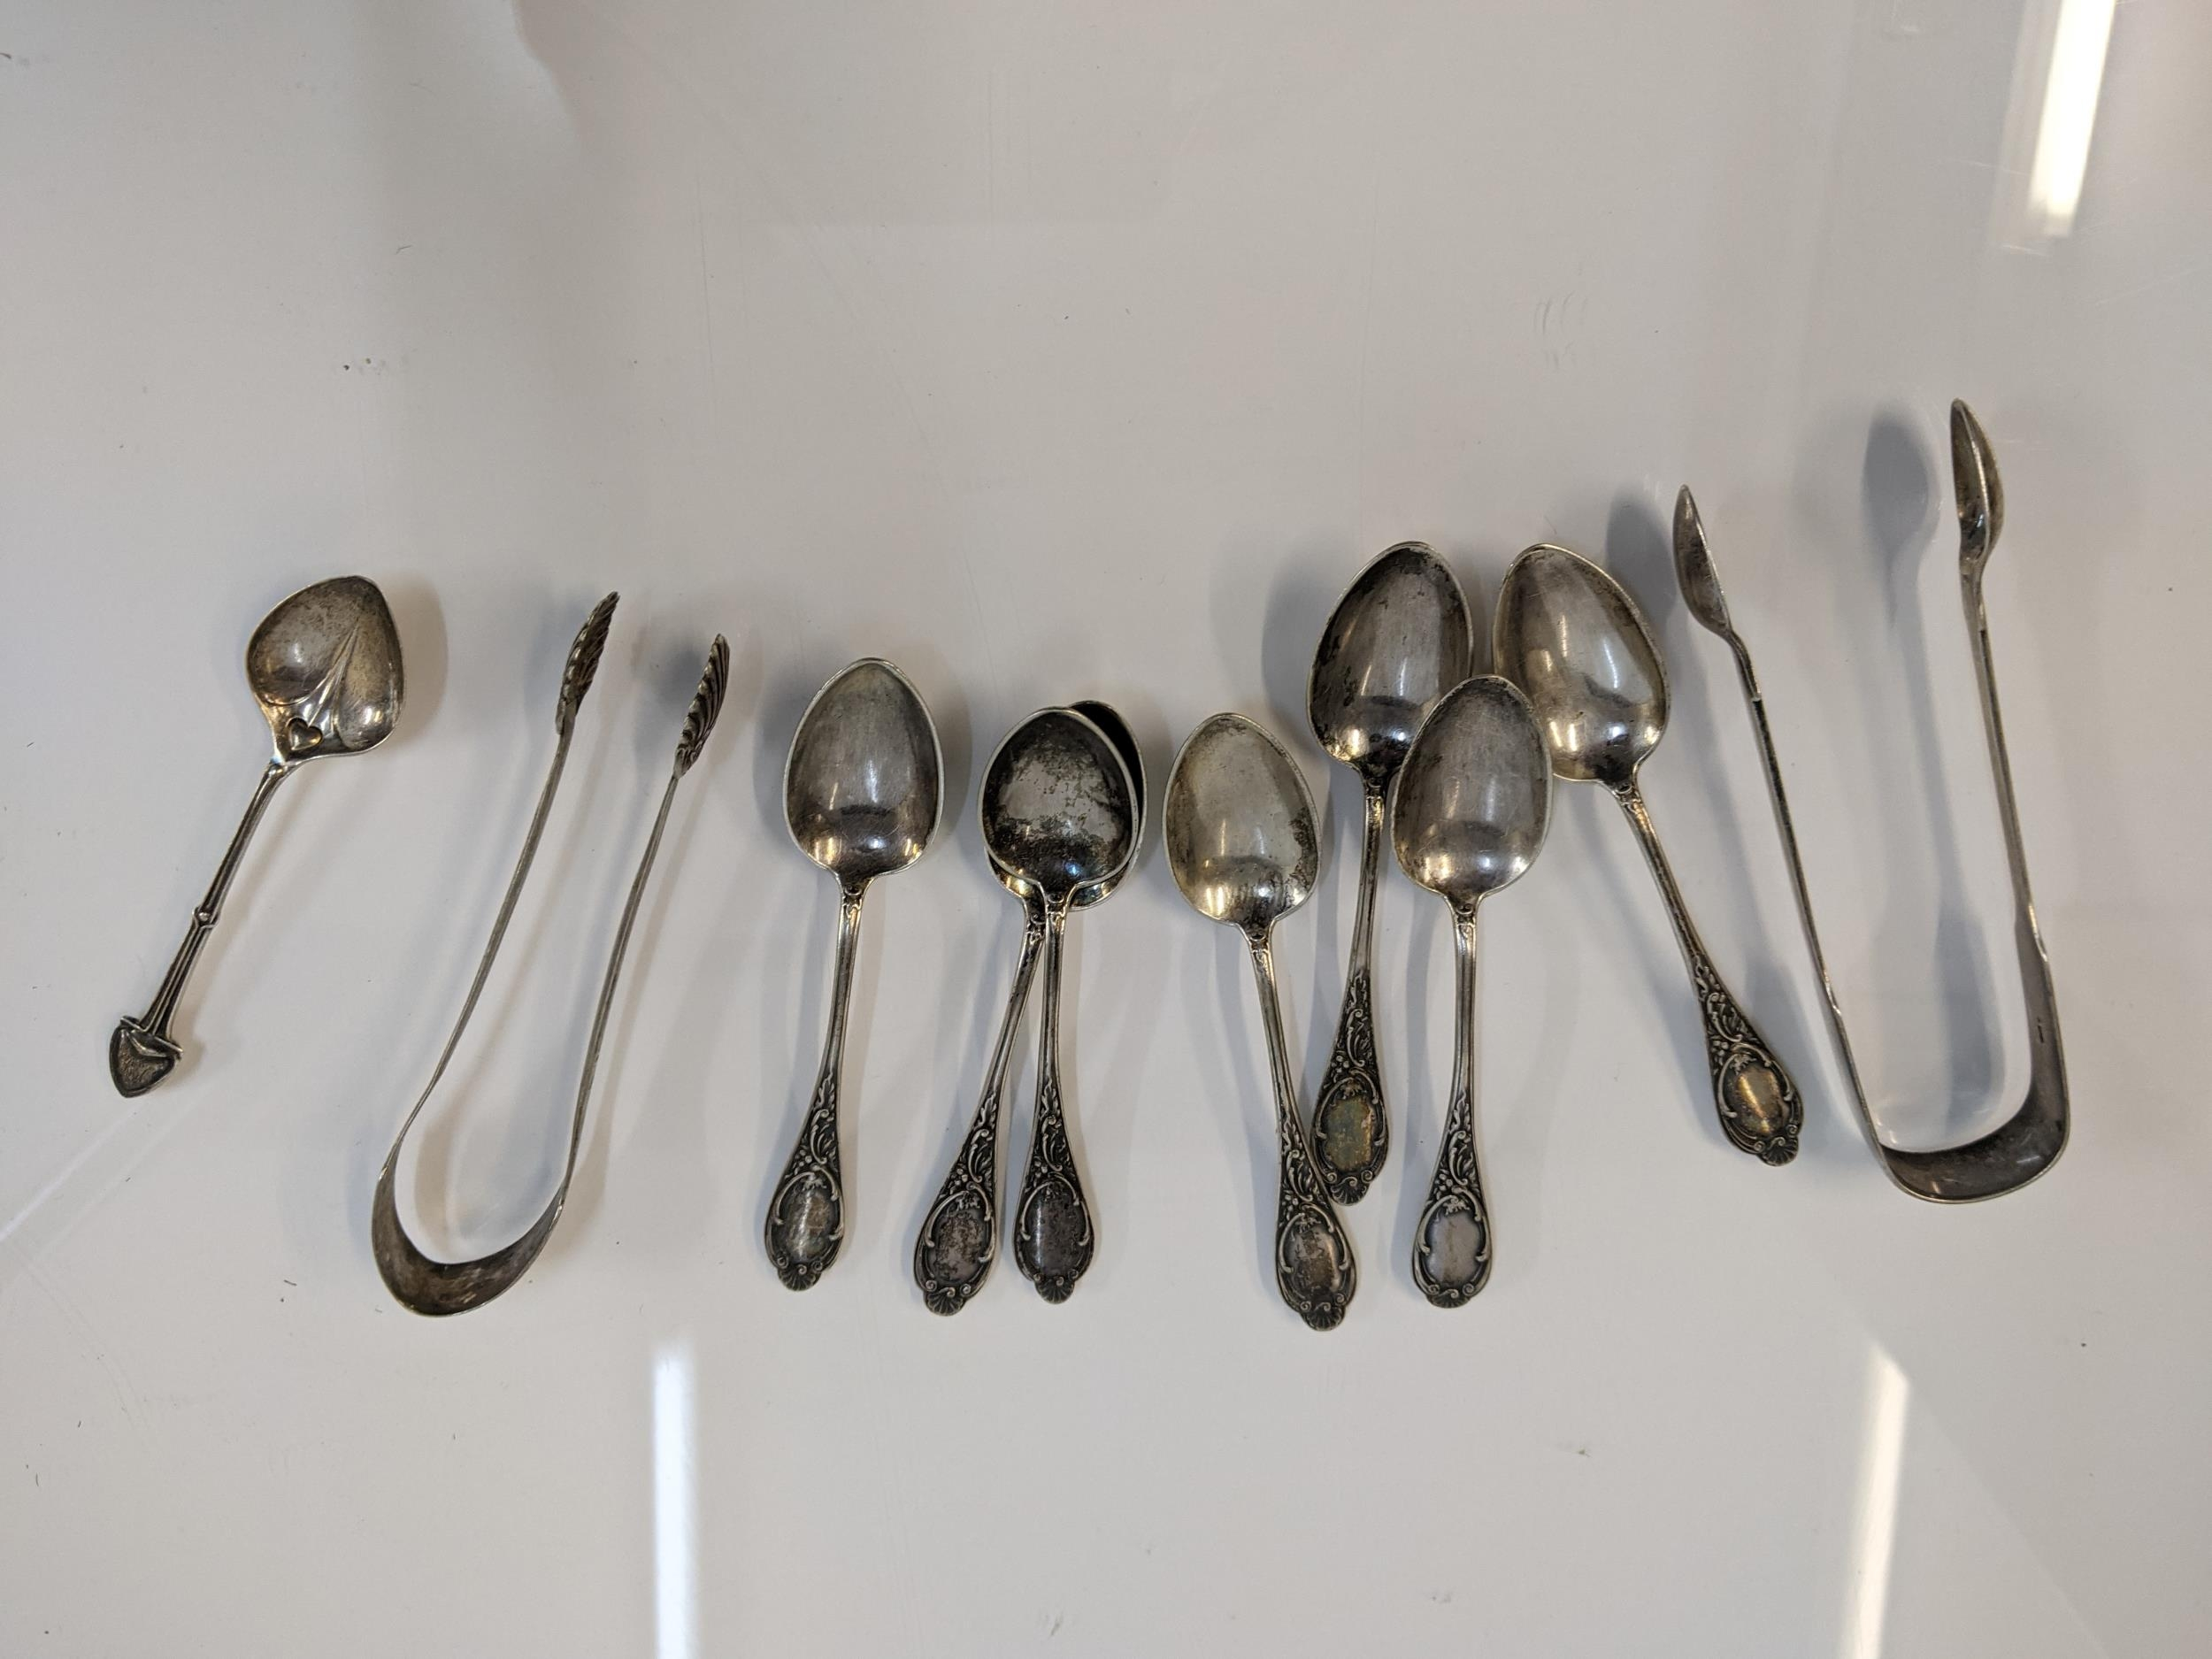 Silver and silver coloured metal to include seven teaspoons stamped 800, two sugar tongs and a